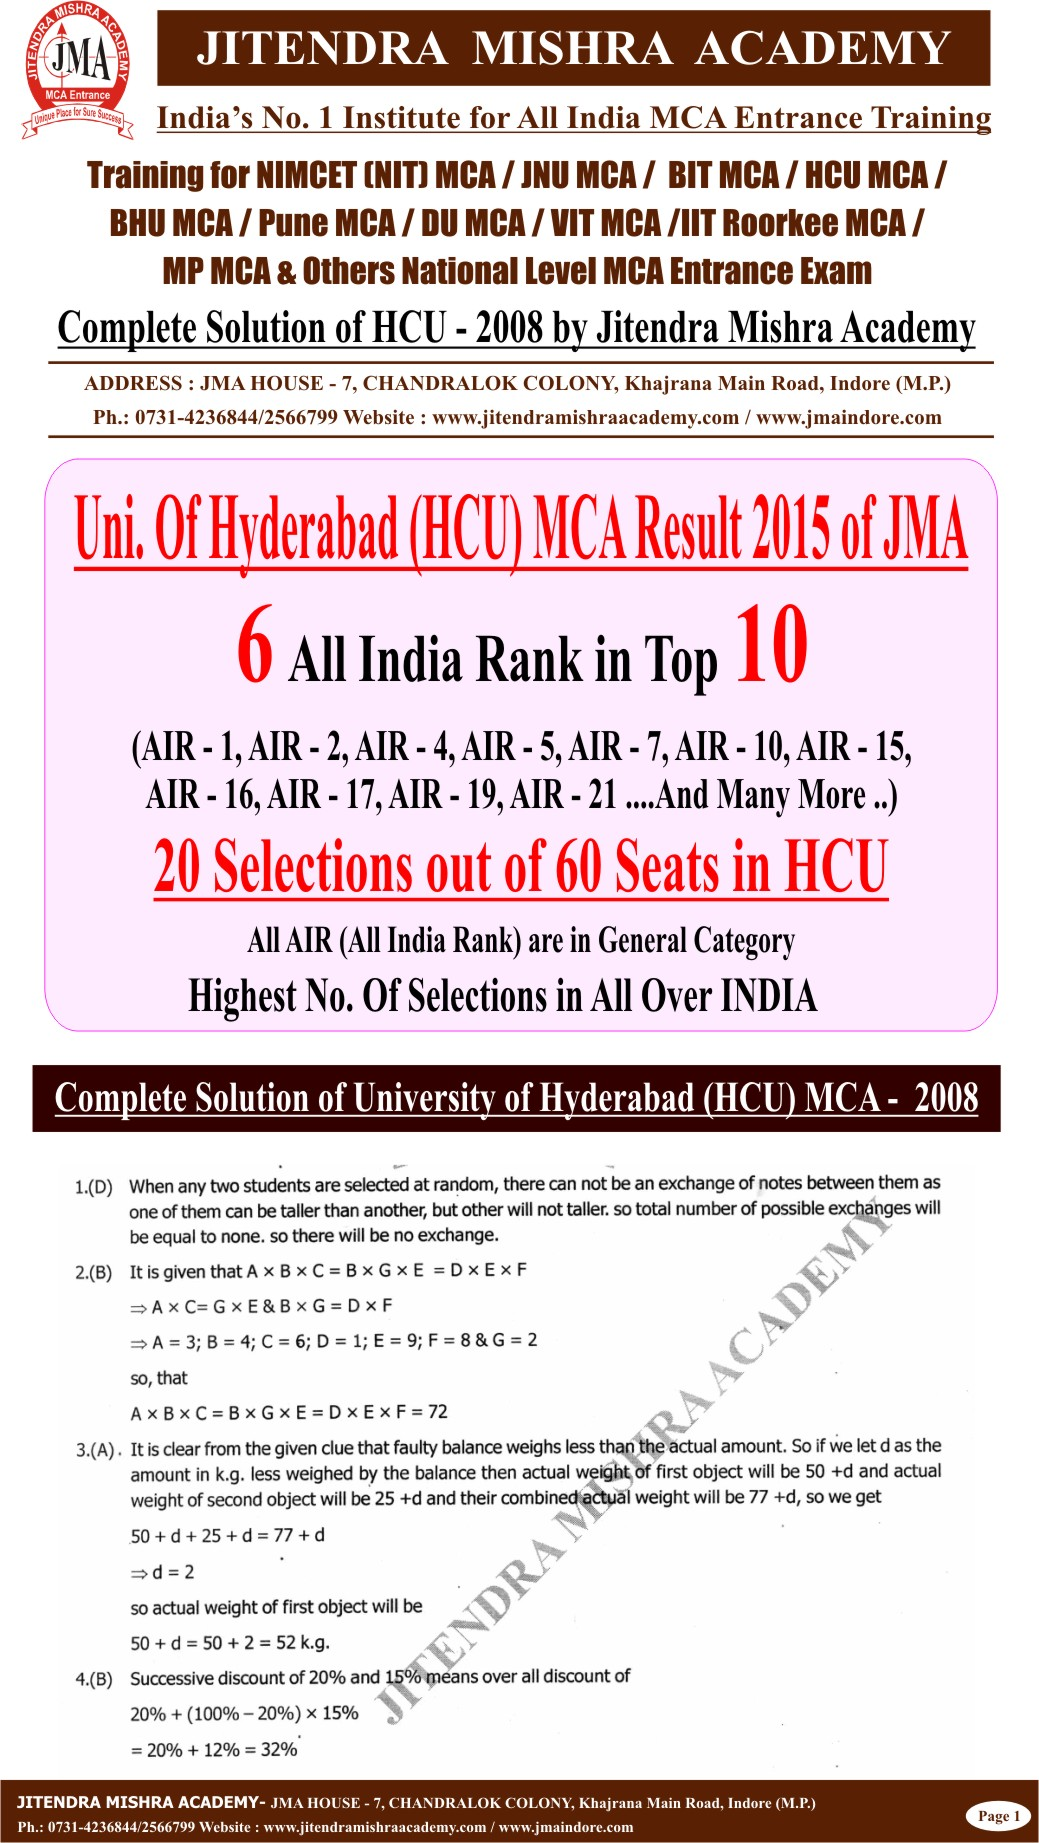 HCU - 2008 (Solution) (FIRST PAGE)